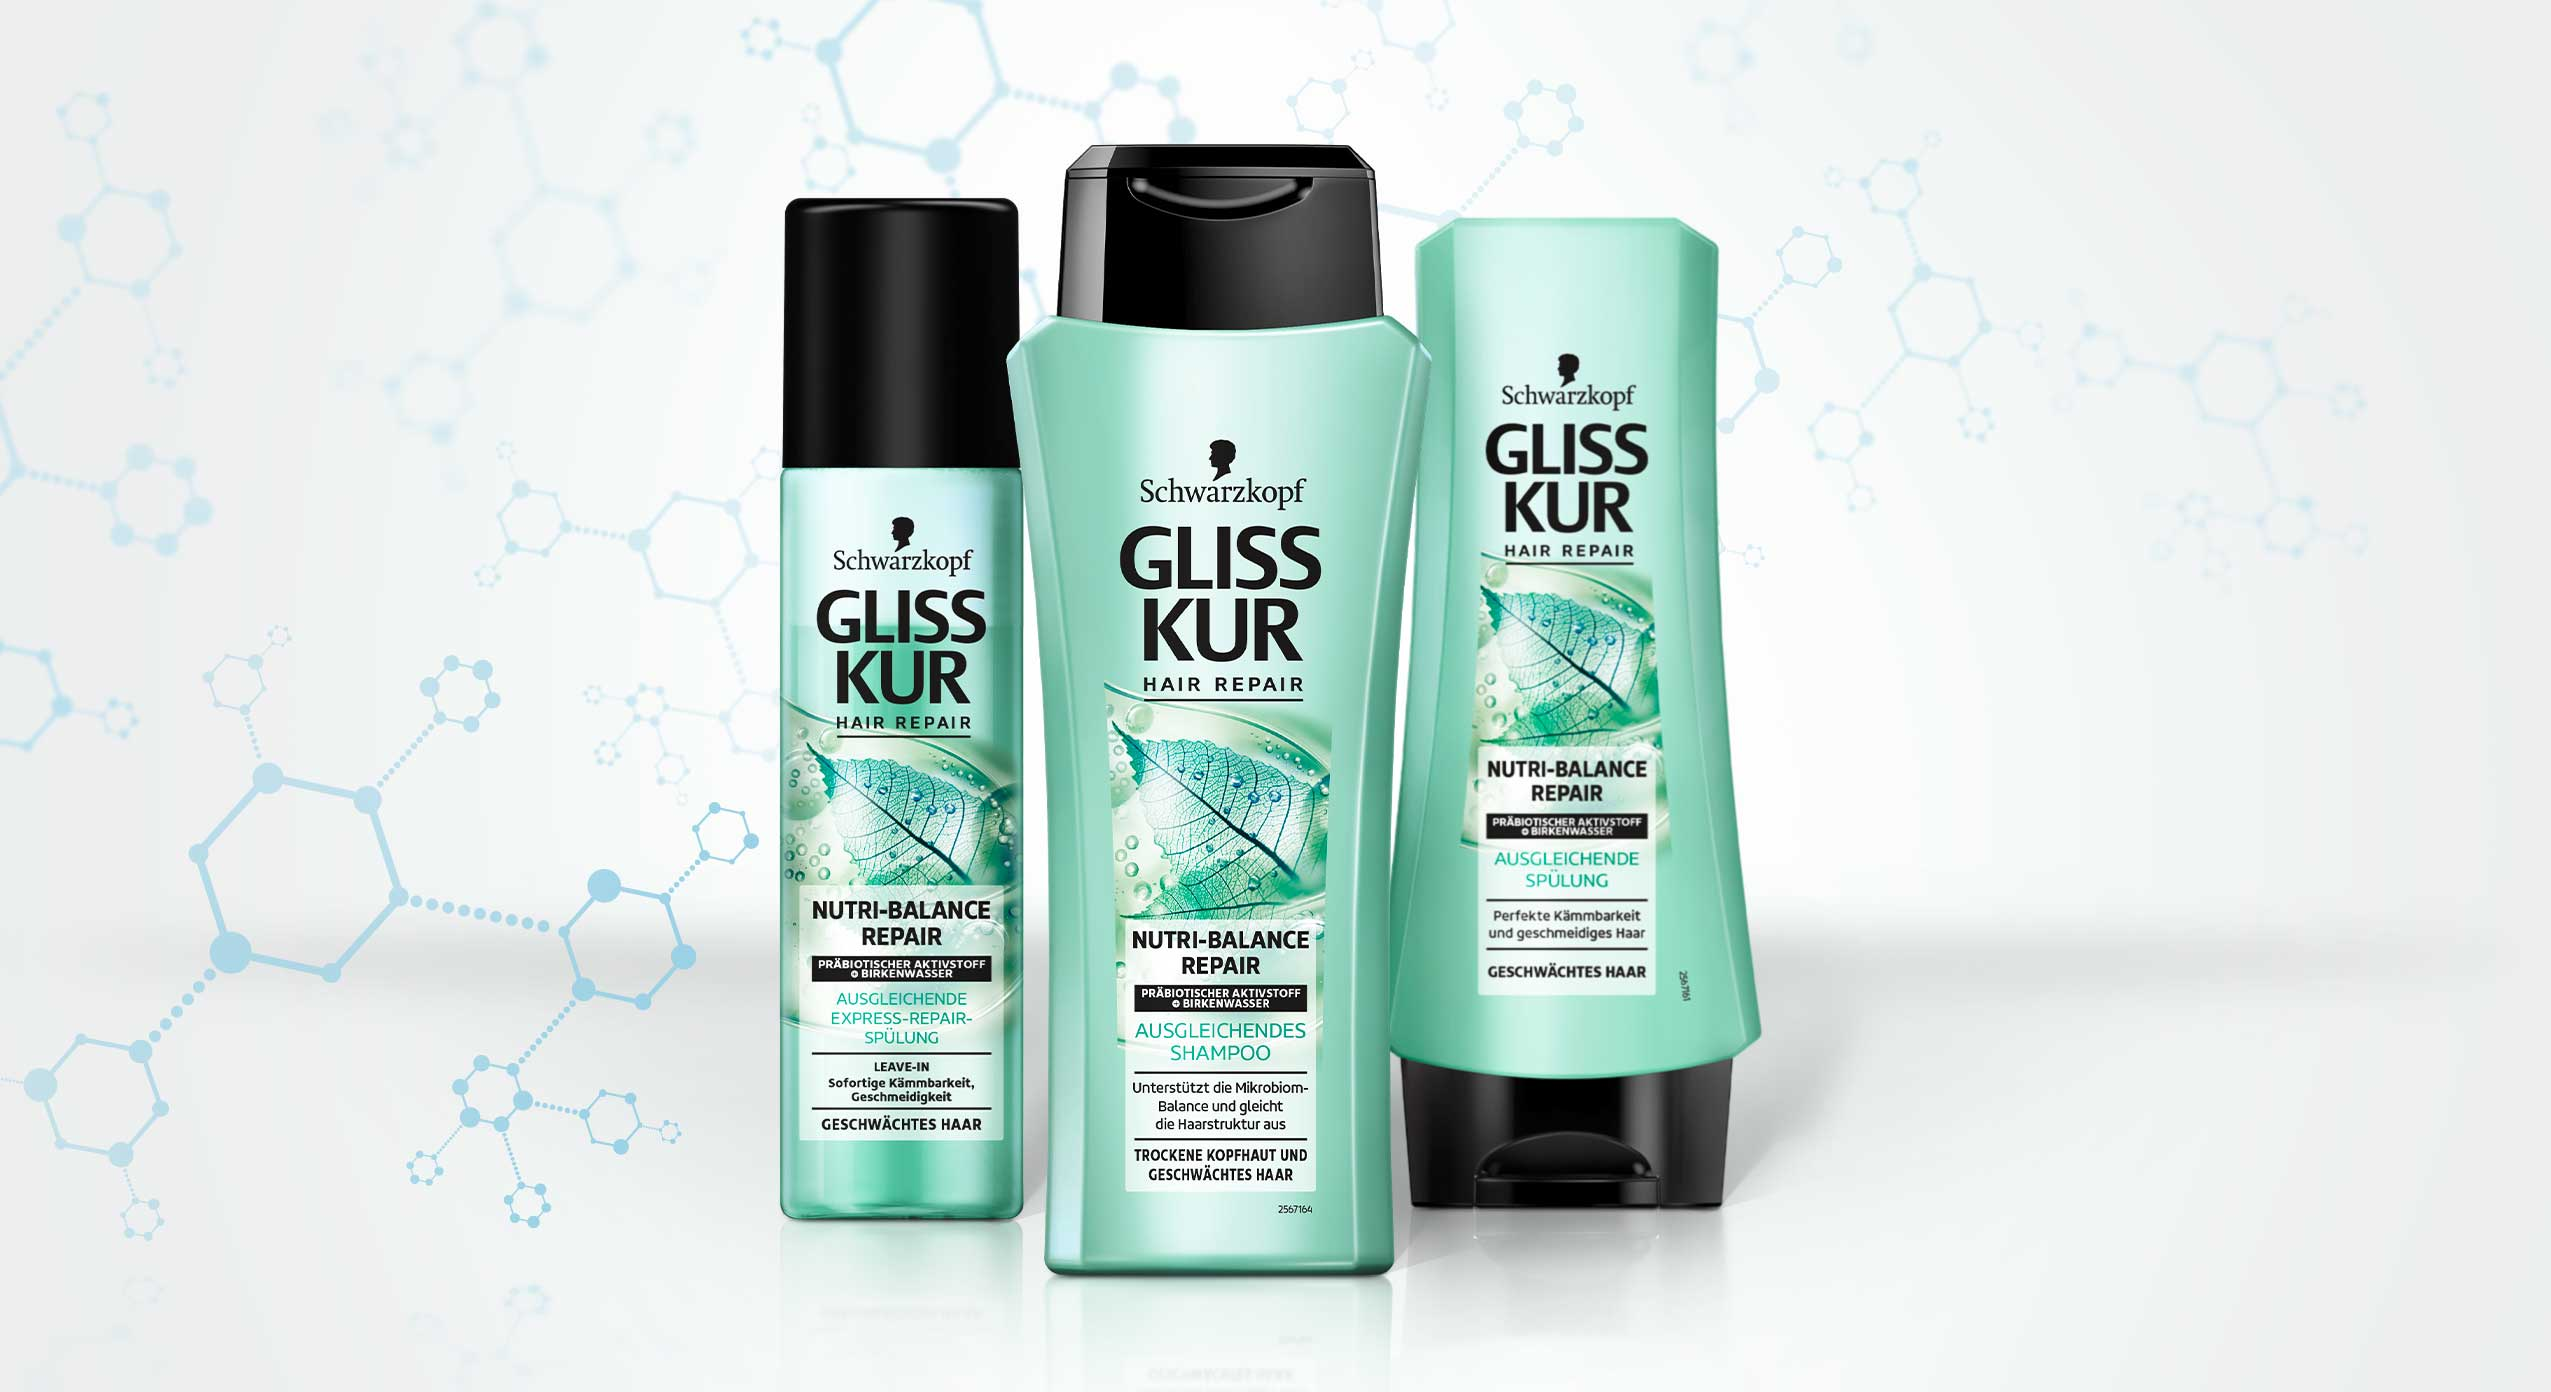 New Gliss Kur subline Nutri-Balance Repair made by baries